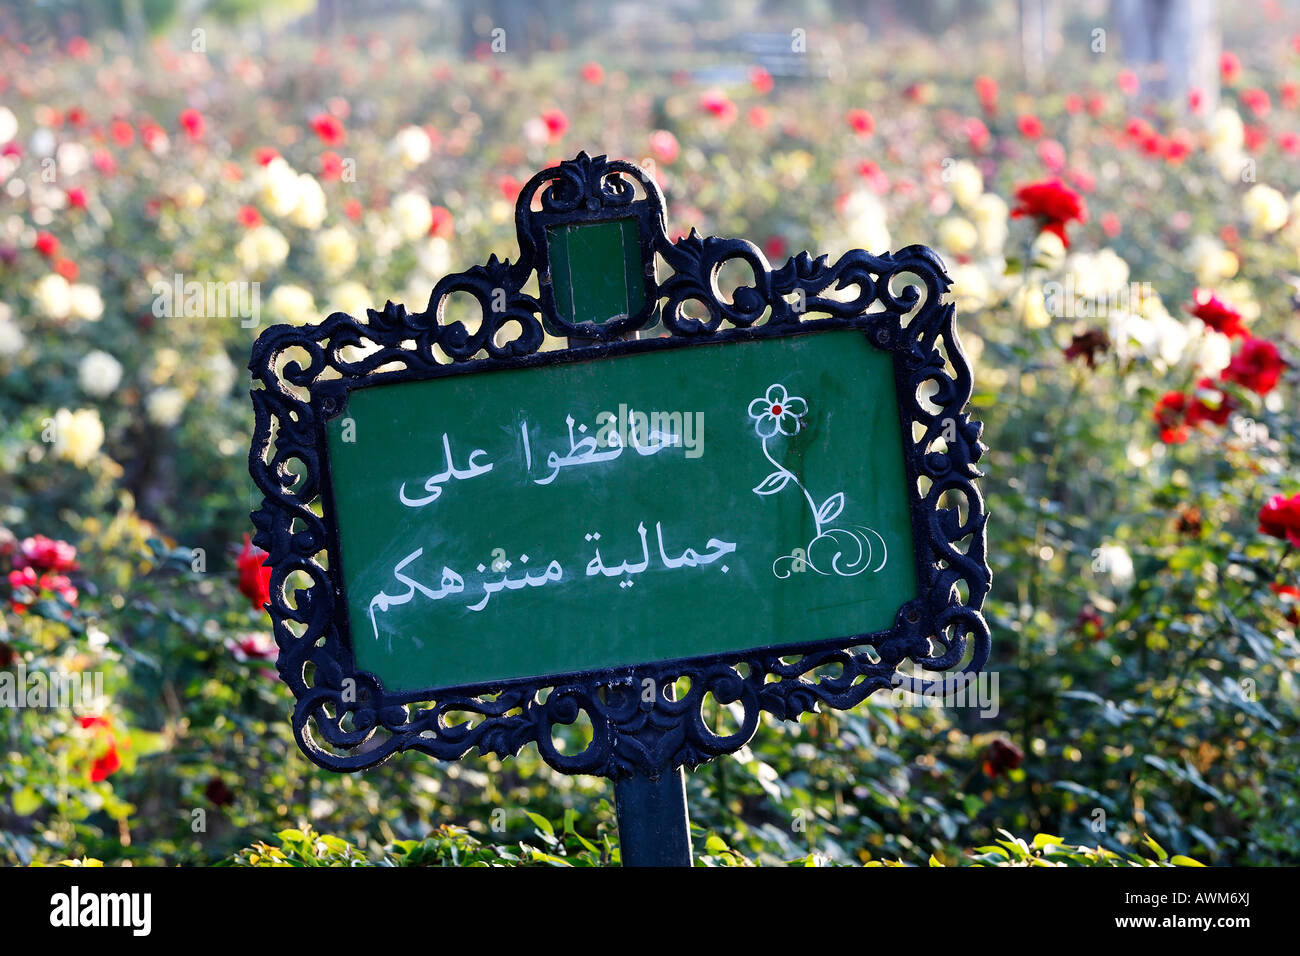 Sign with rose description in Arabic language, rose gardens of Koutoubia mosque, Marrakech, Morocco, Africa - Stock Image